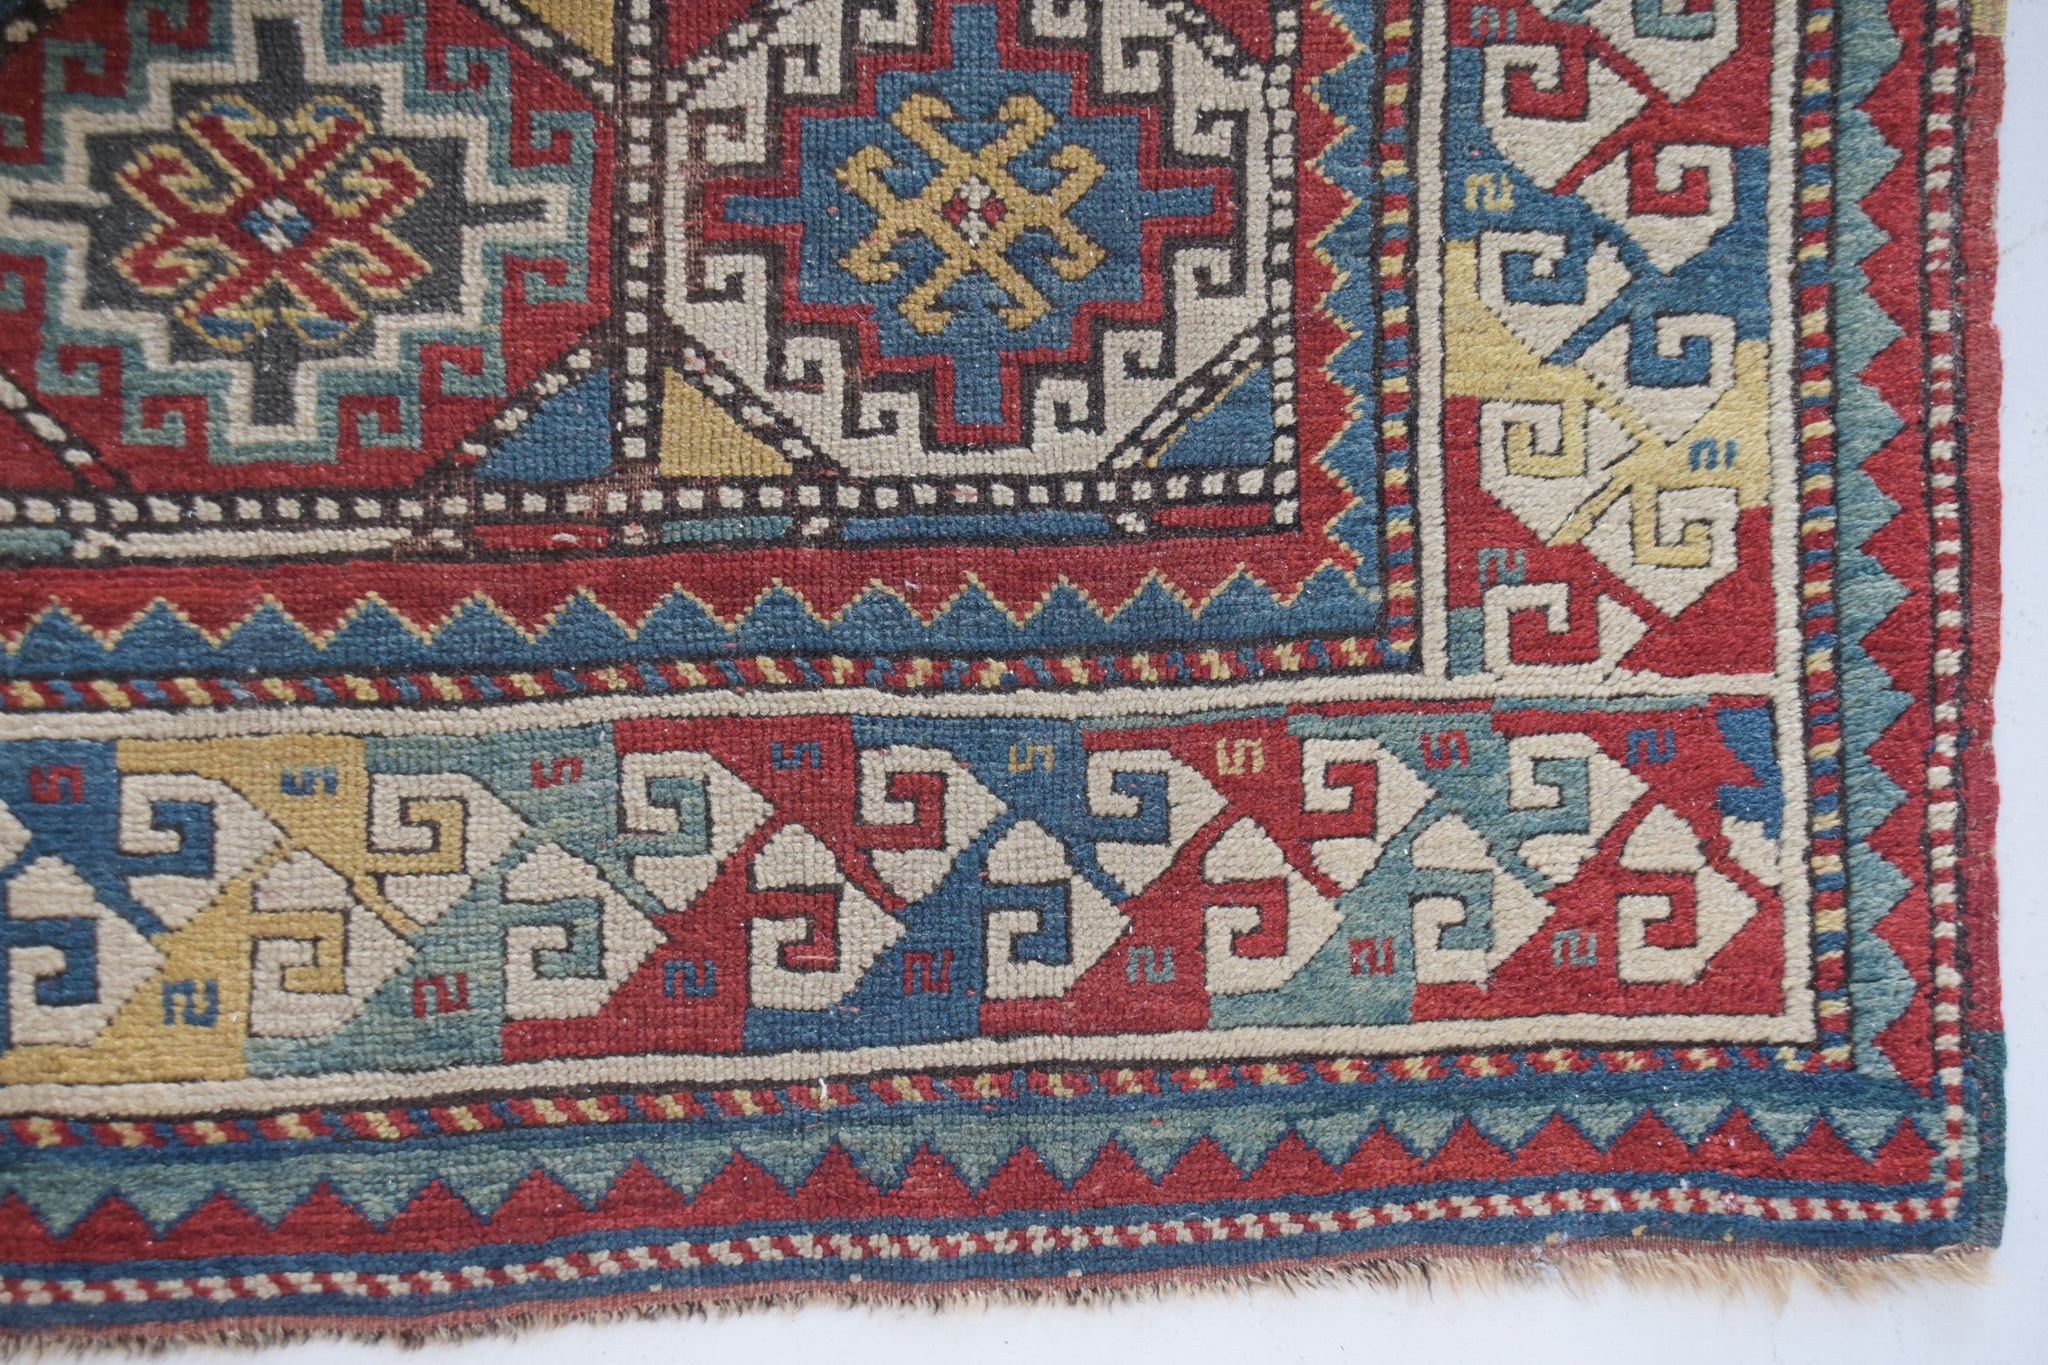 Handmade Antique Large Rug with a Geometric Design